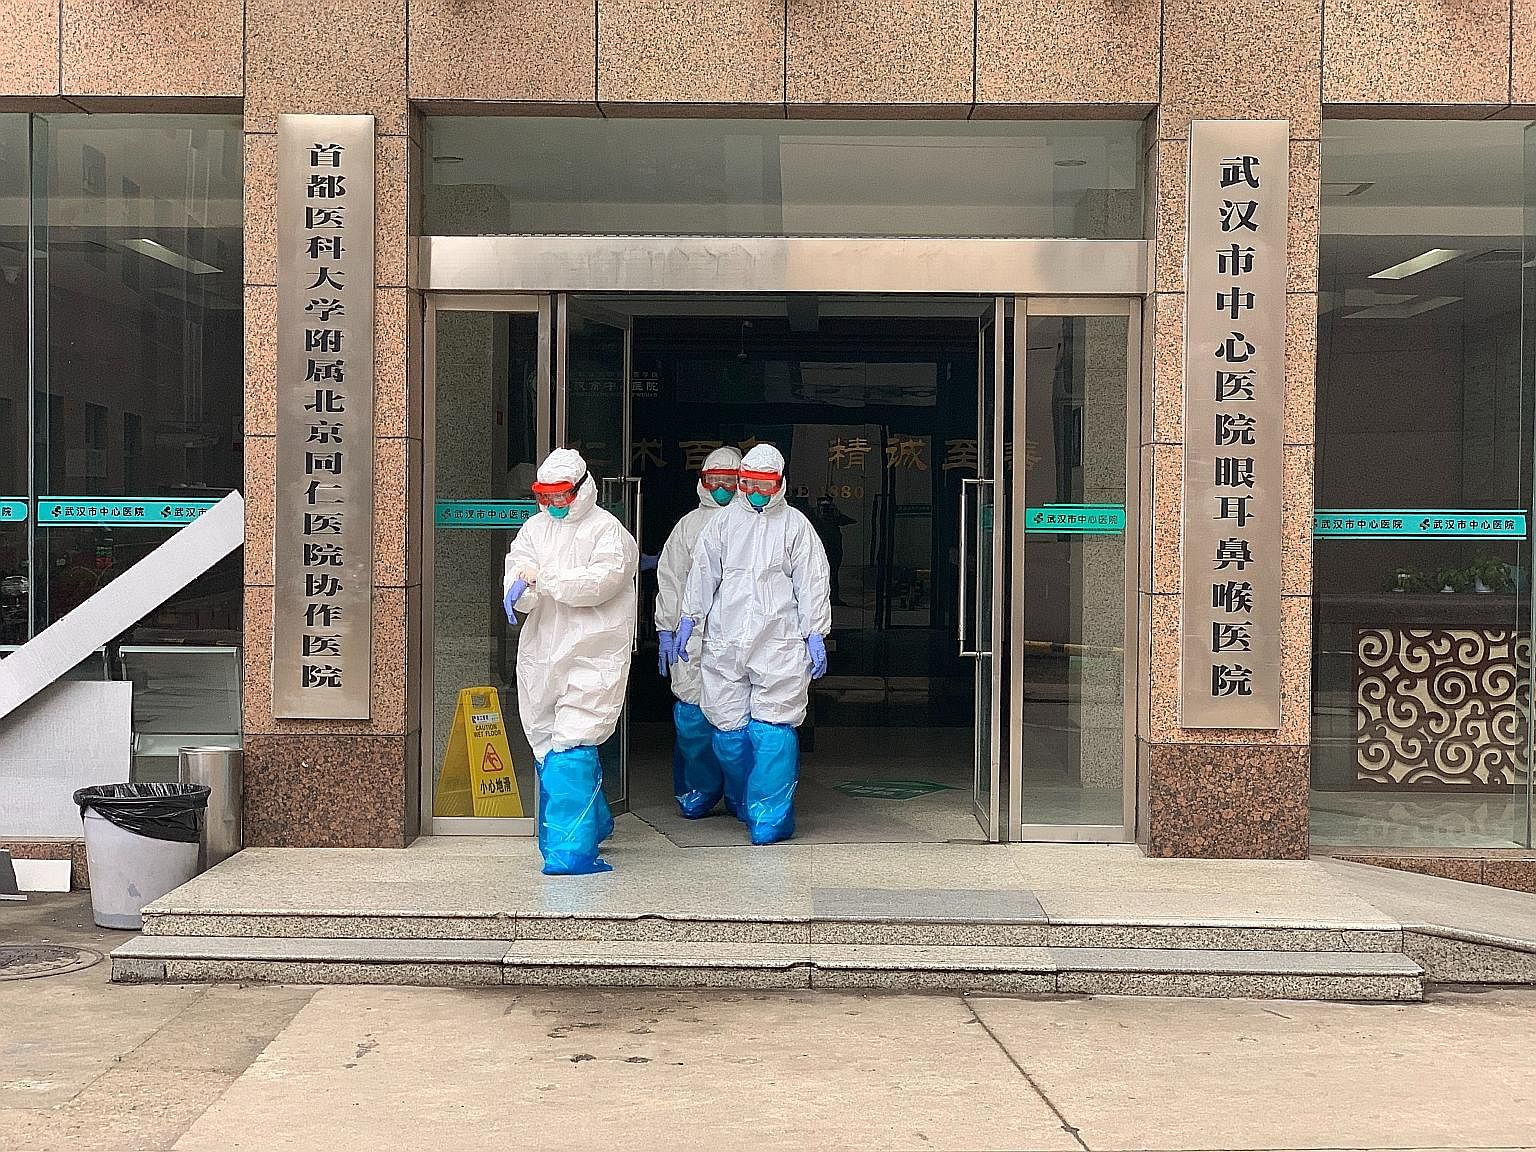 Medical professionals at hospitals in Wuhan have been fighting the coronavirus outbreak for more than a month. In some hospitals, all medical workers have given up their holidays, working in shifts to keep the intensive care unit (ICU) running at ful